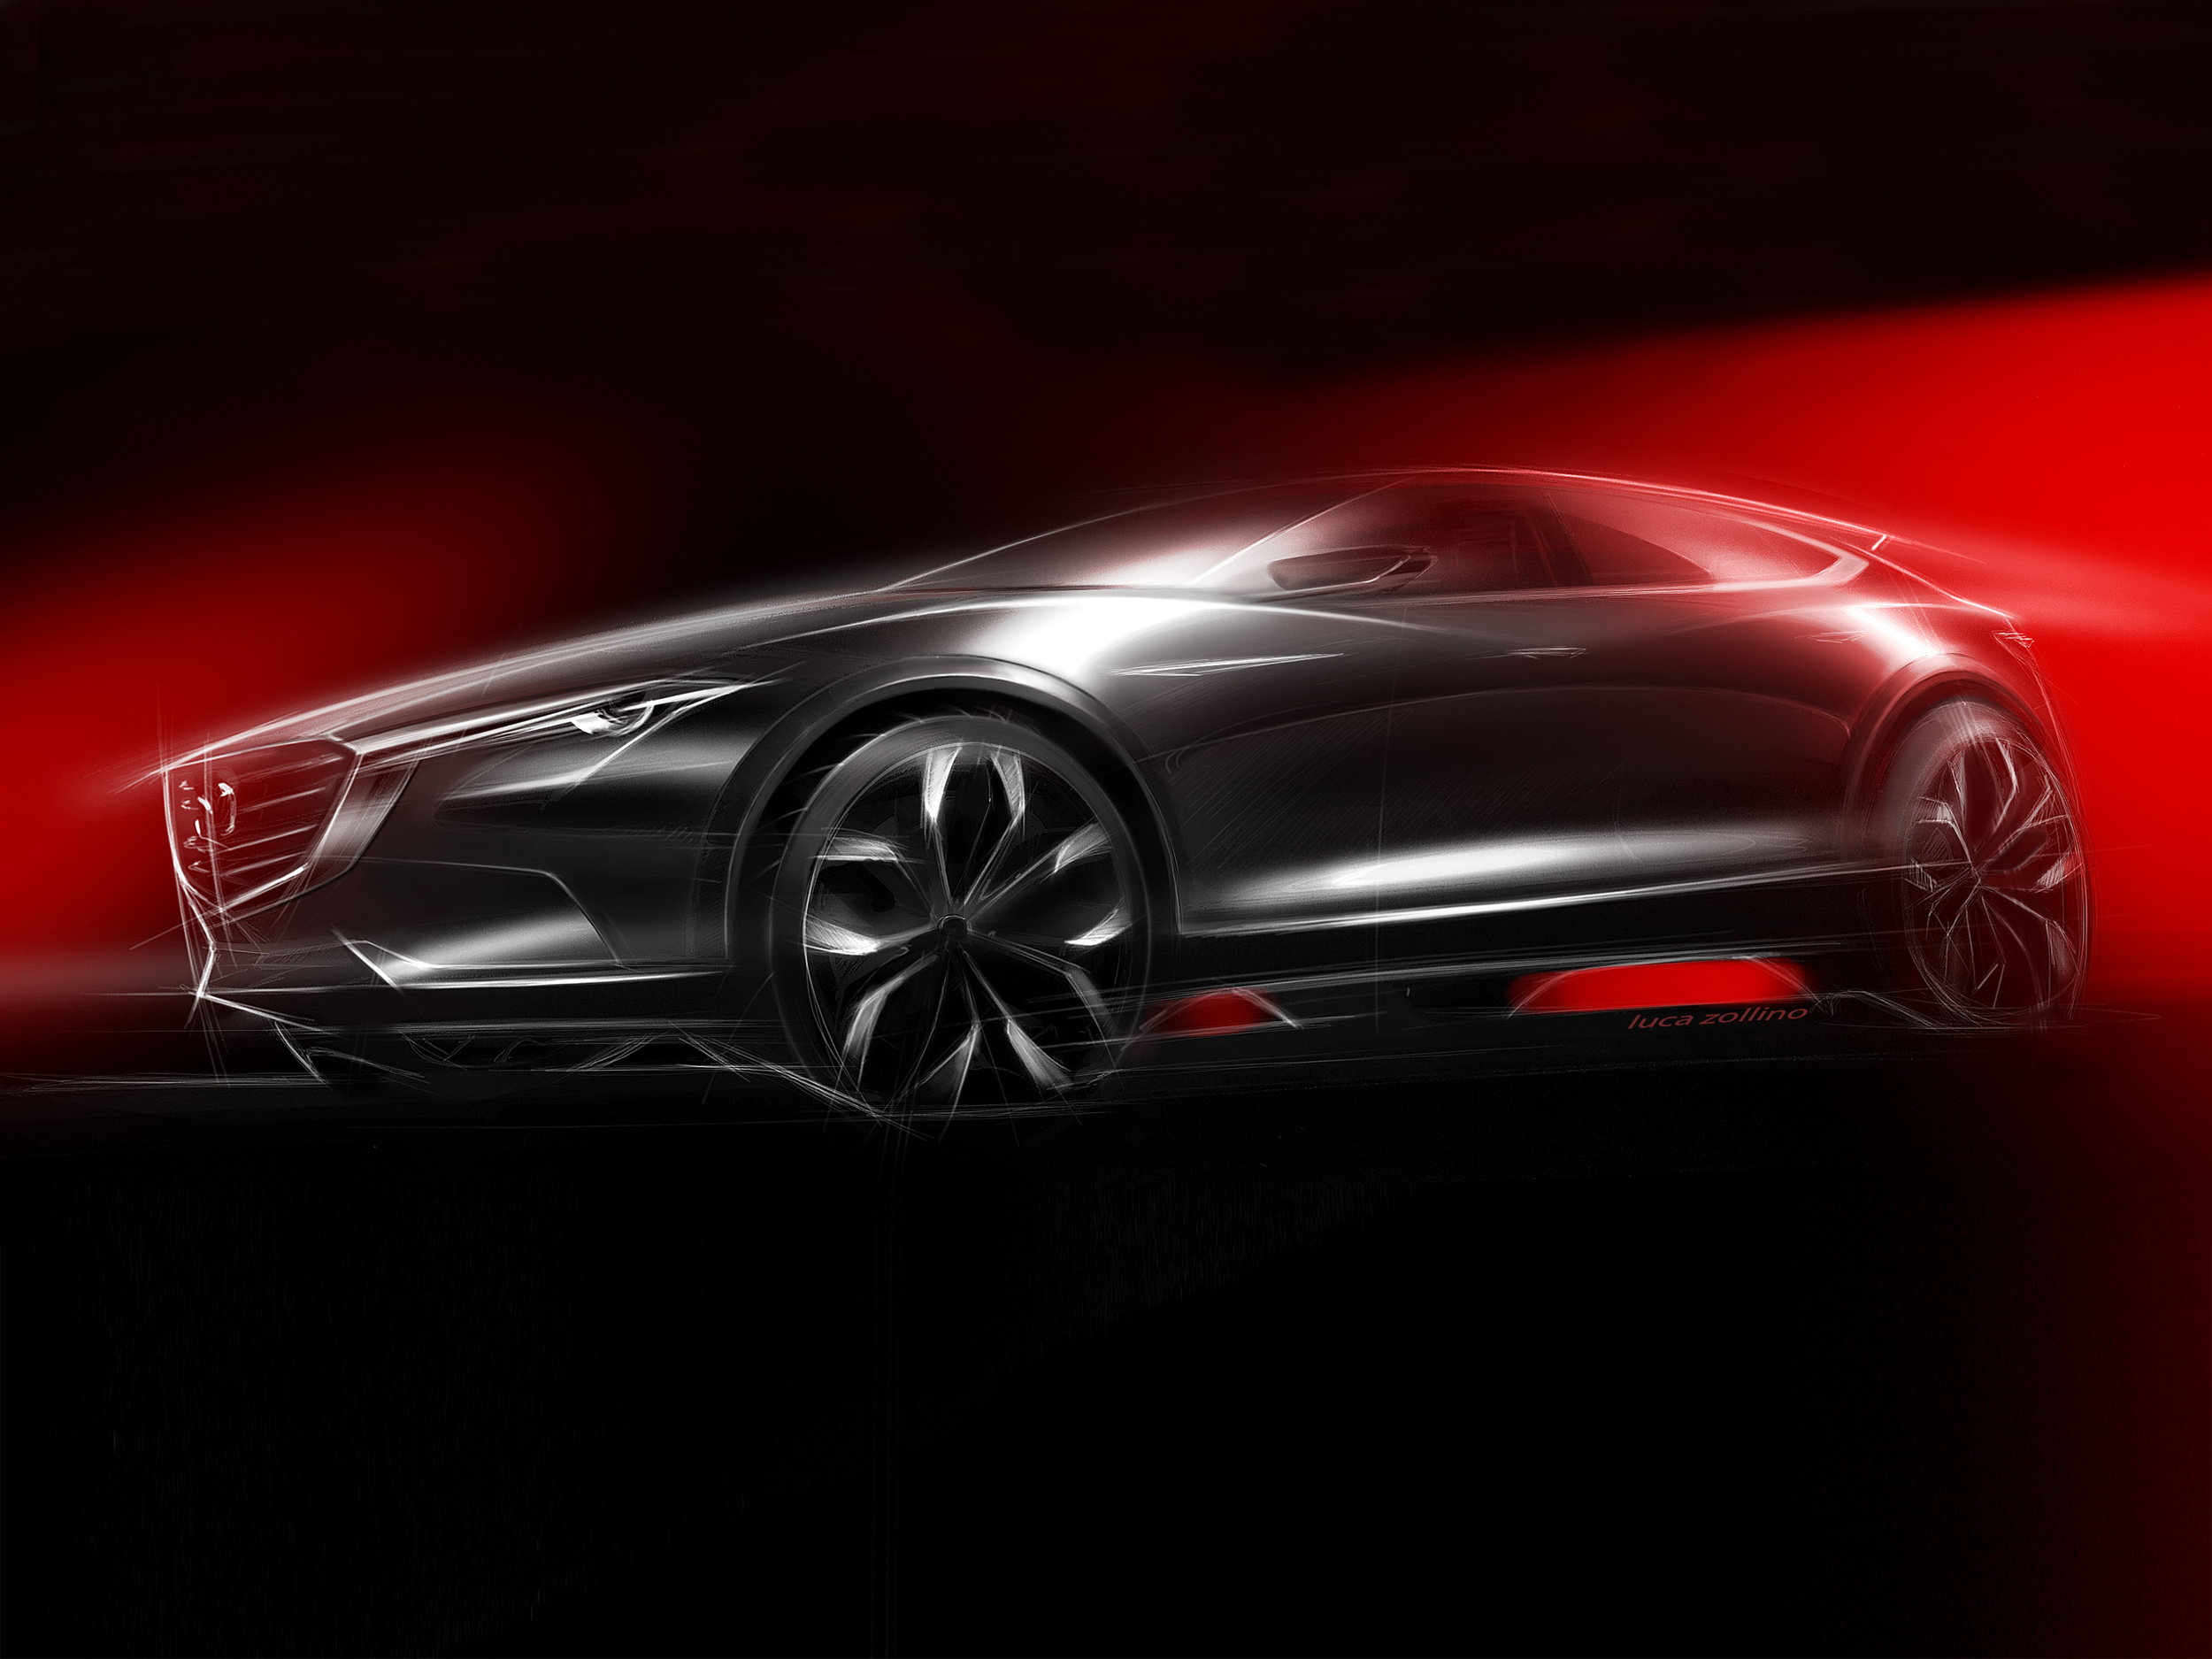 Mazda to unveil new crossover concept in Frankfurt